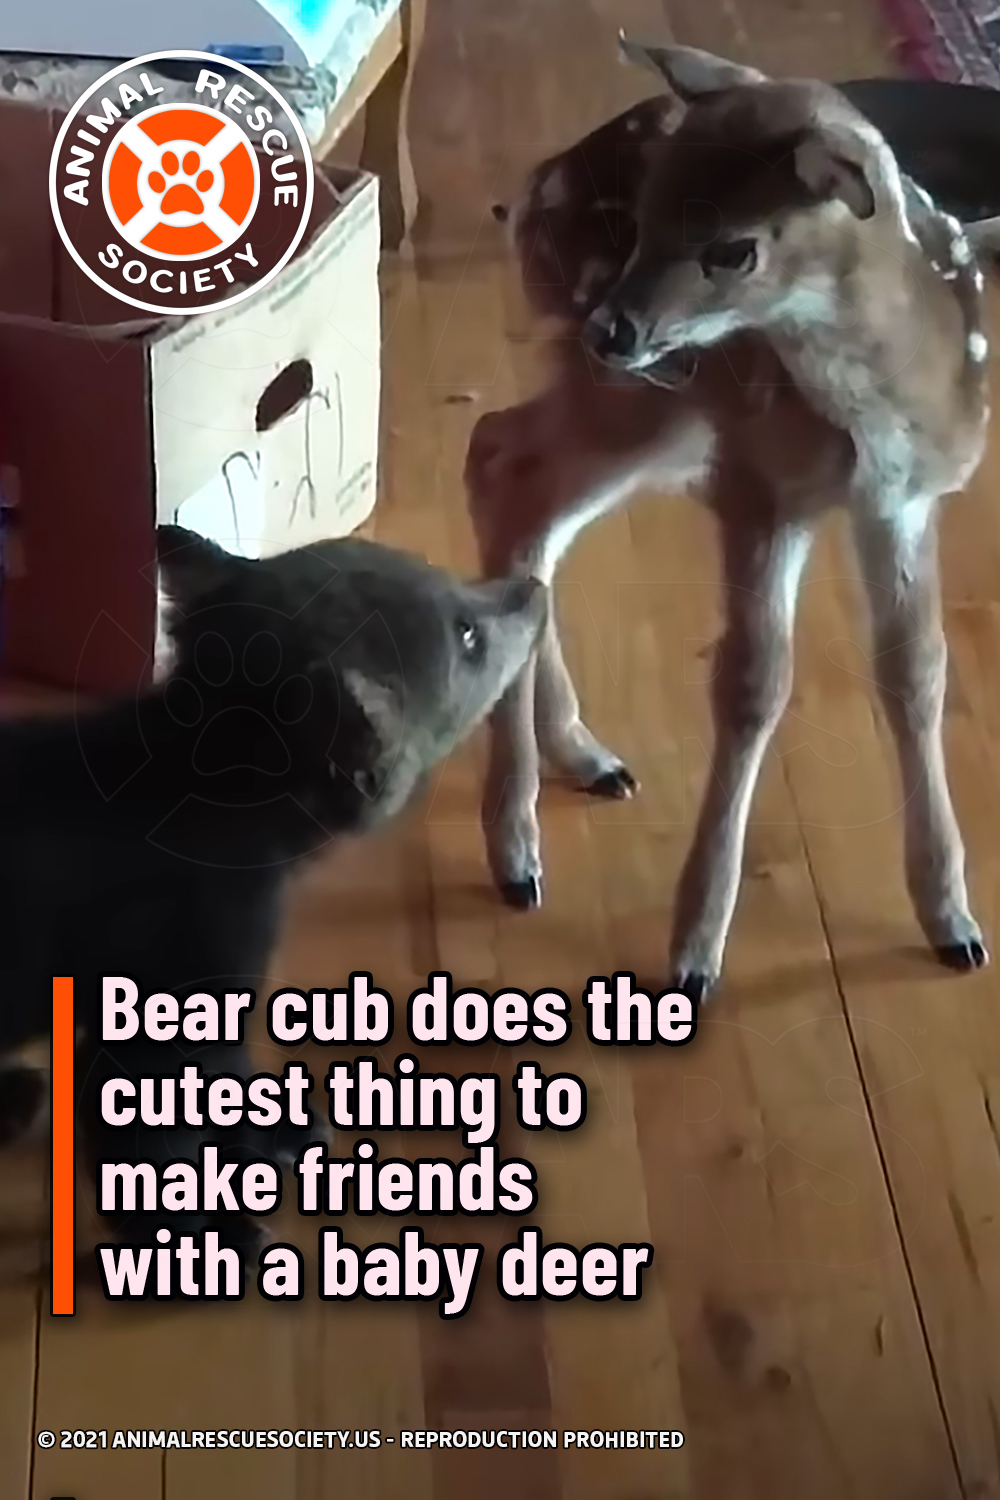 Bear cub does the cutest thing to make friends with a baby deer